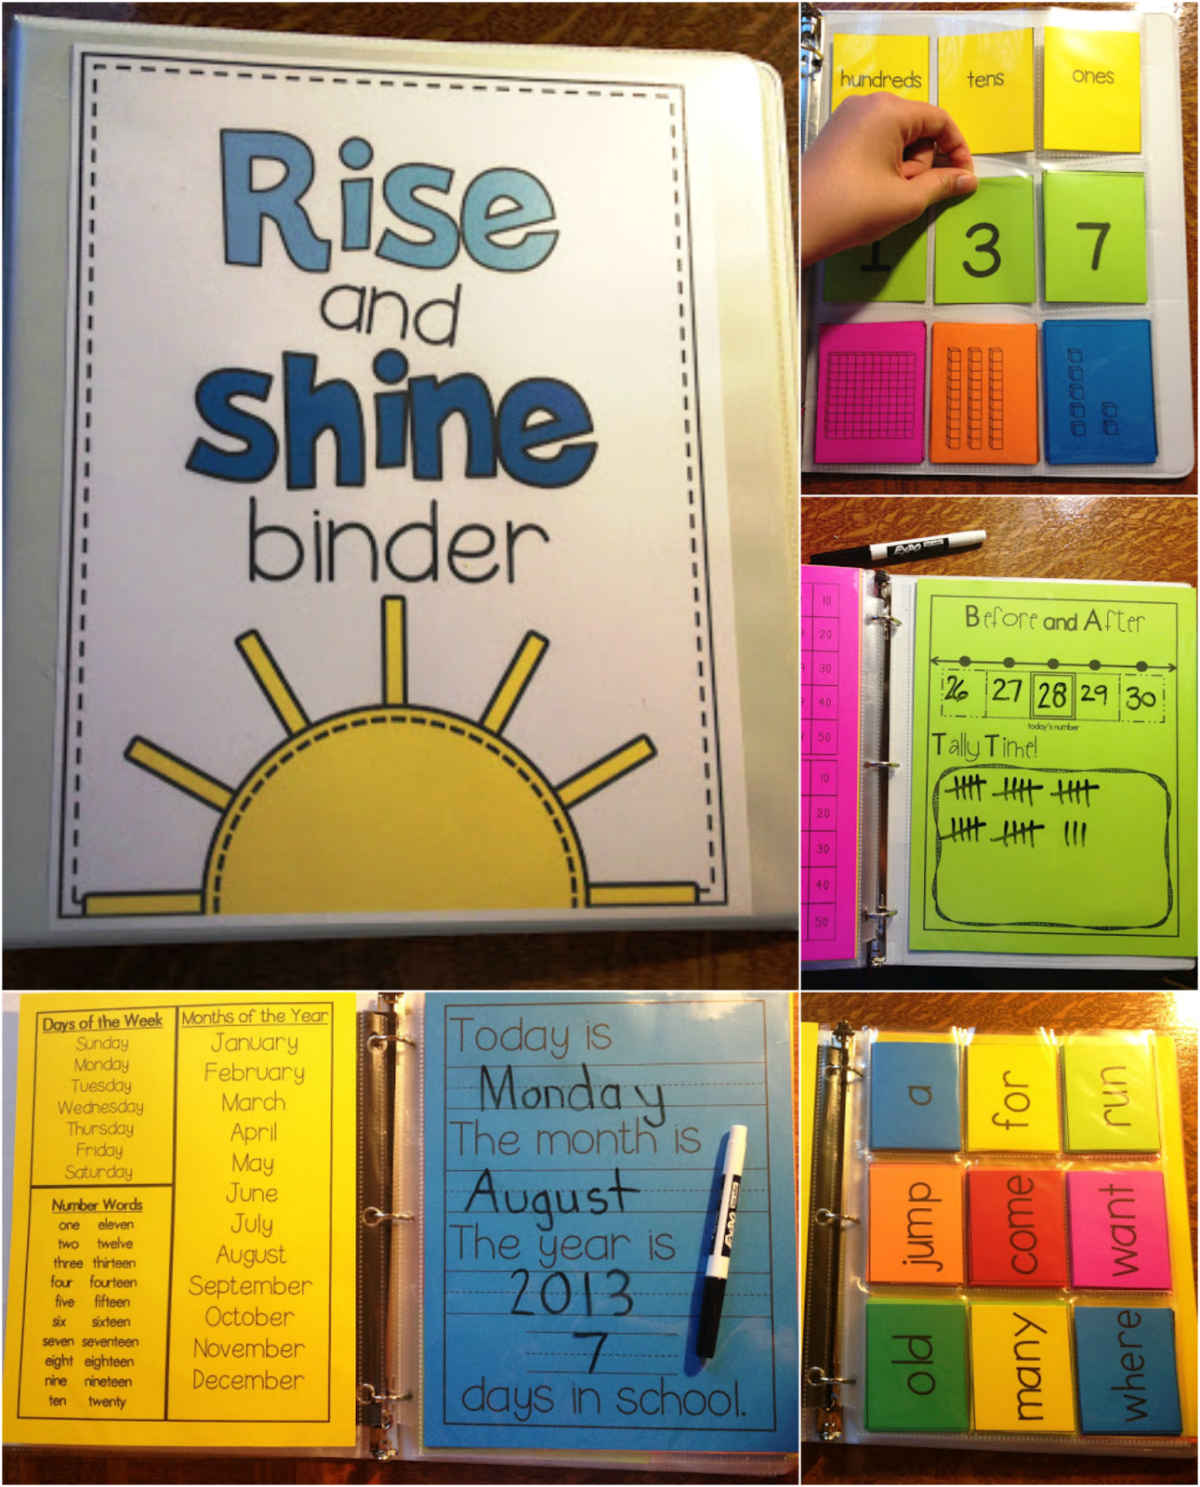 http://www.teacherspayteachers.com/Product/Rise-and-Shine-Binder-762792